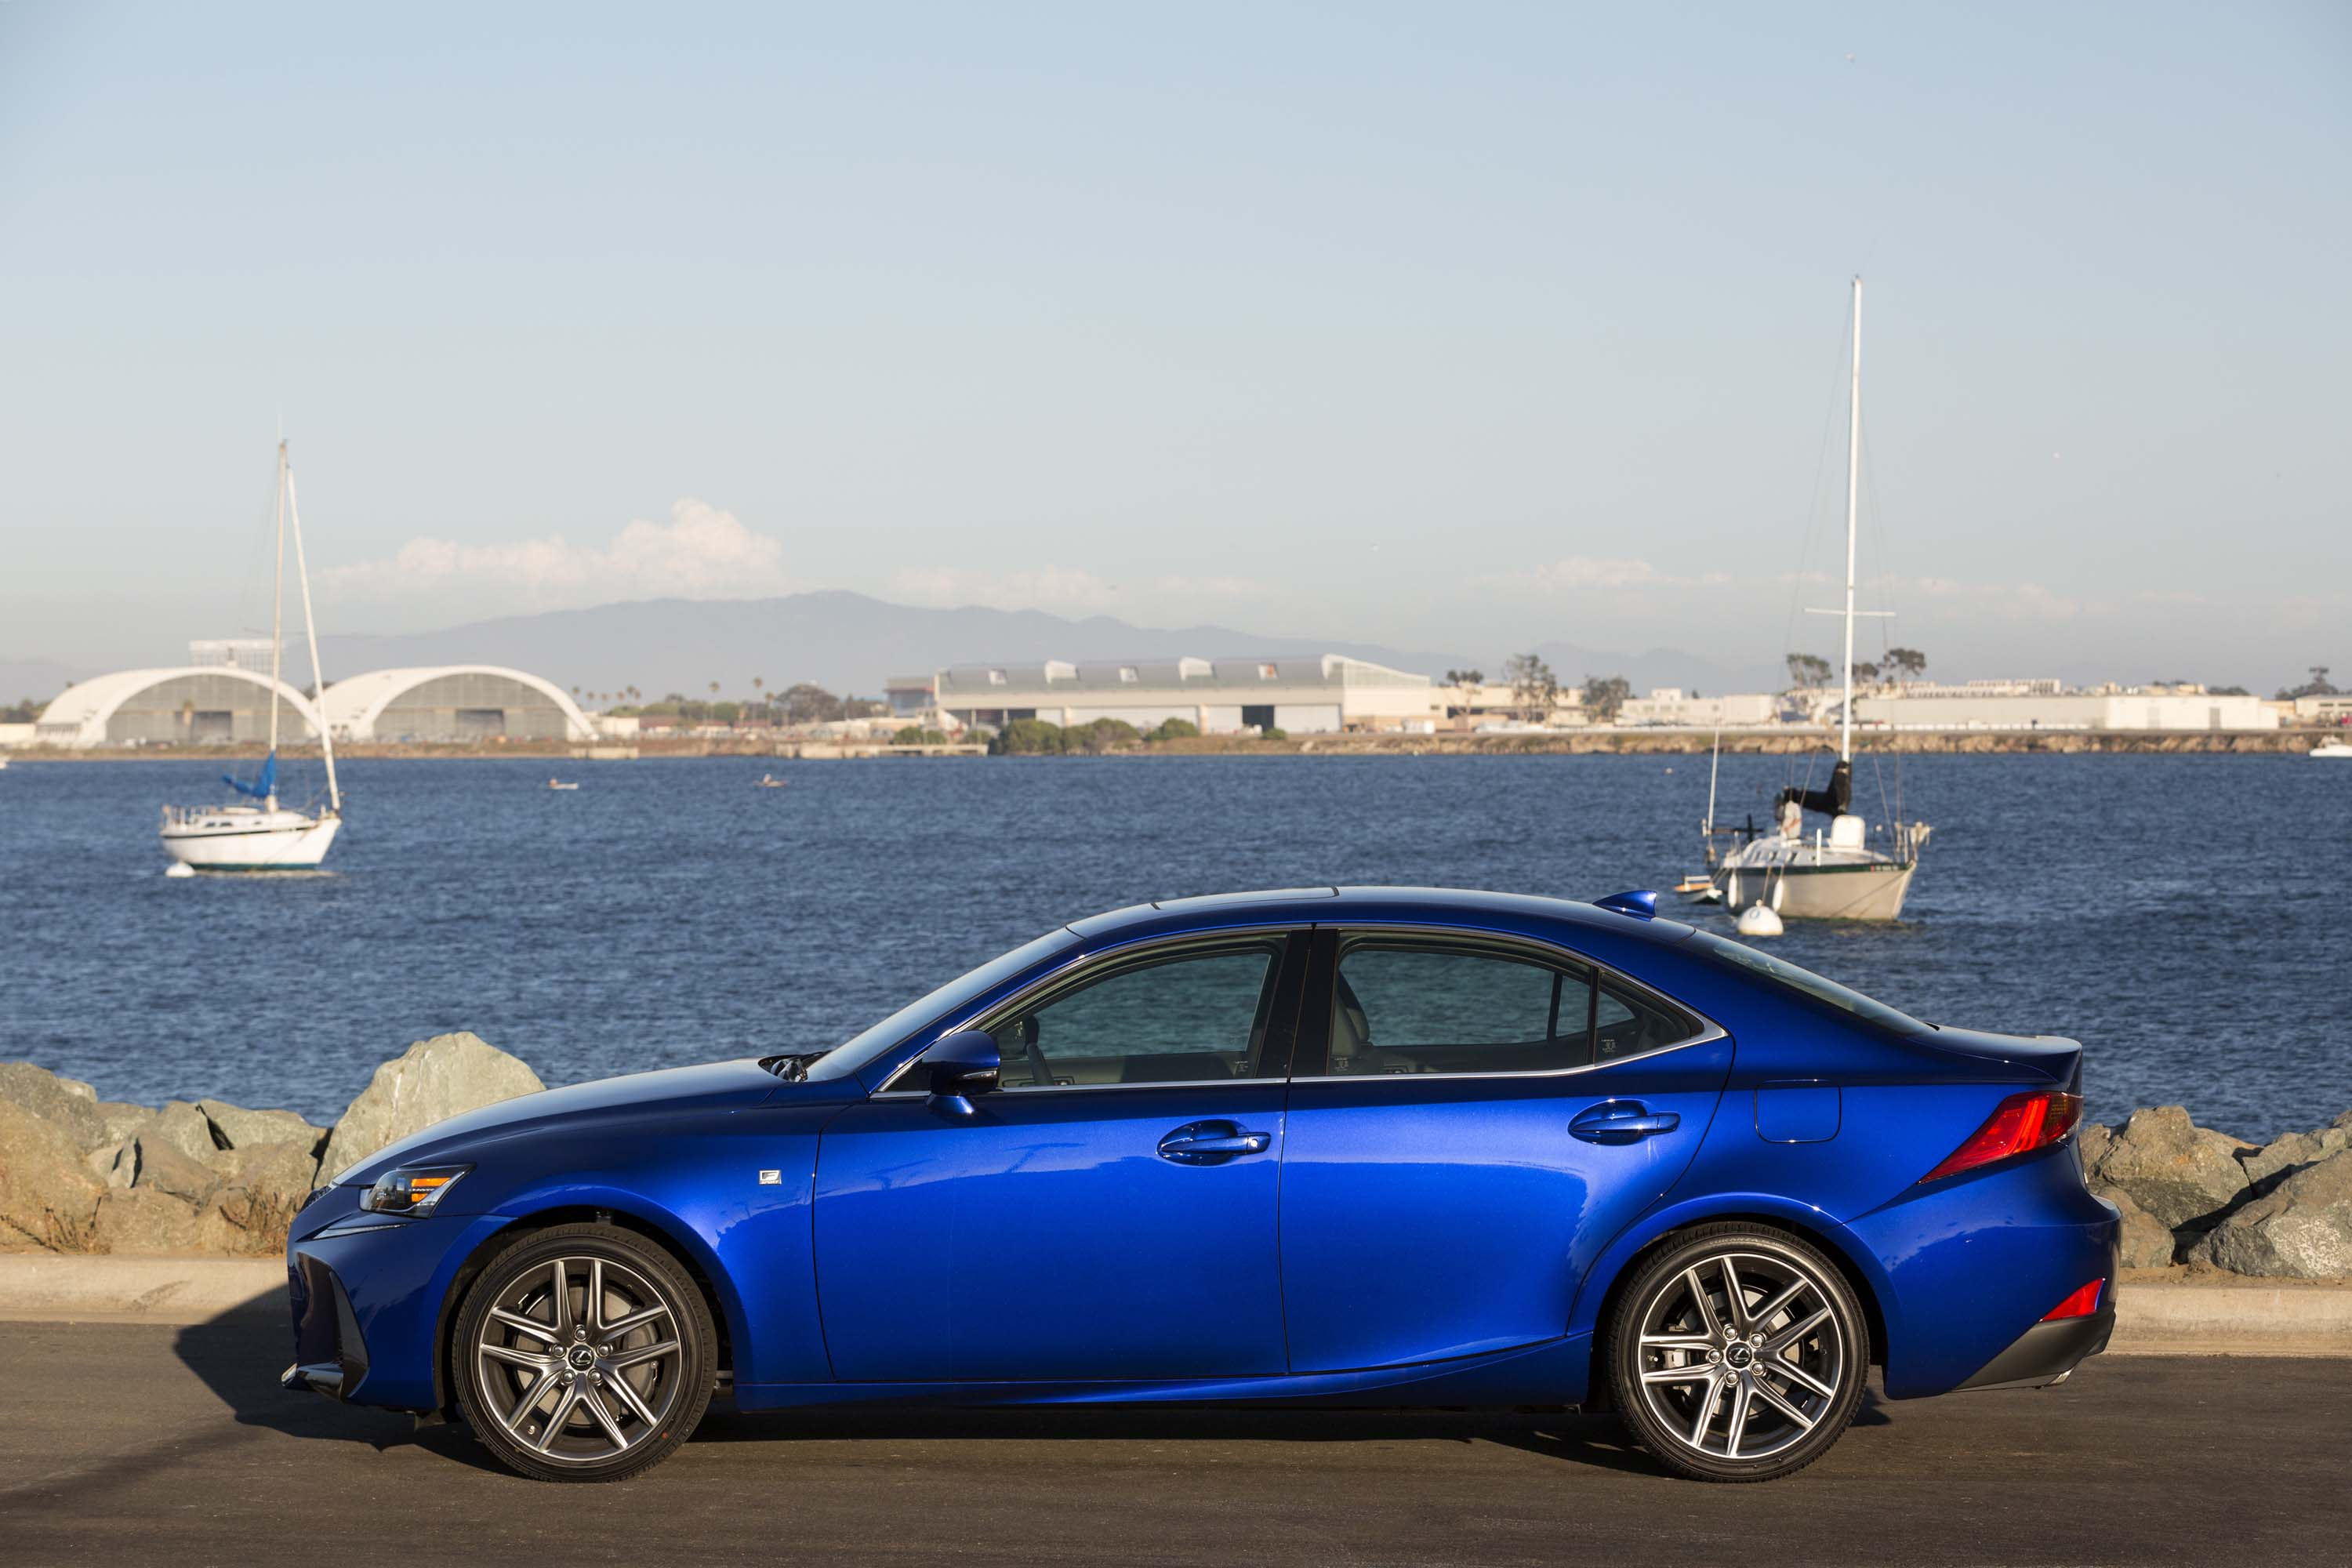 2019 Lexus IS Review, Ratings, Specs, Prices, and Photos